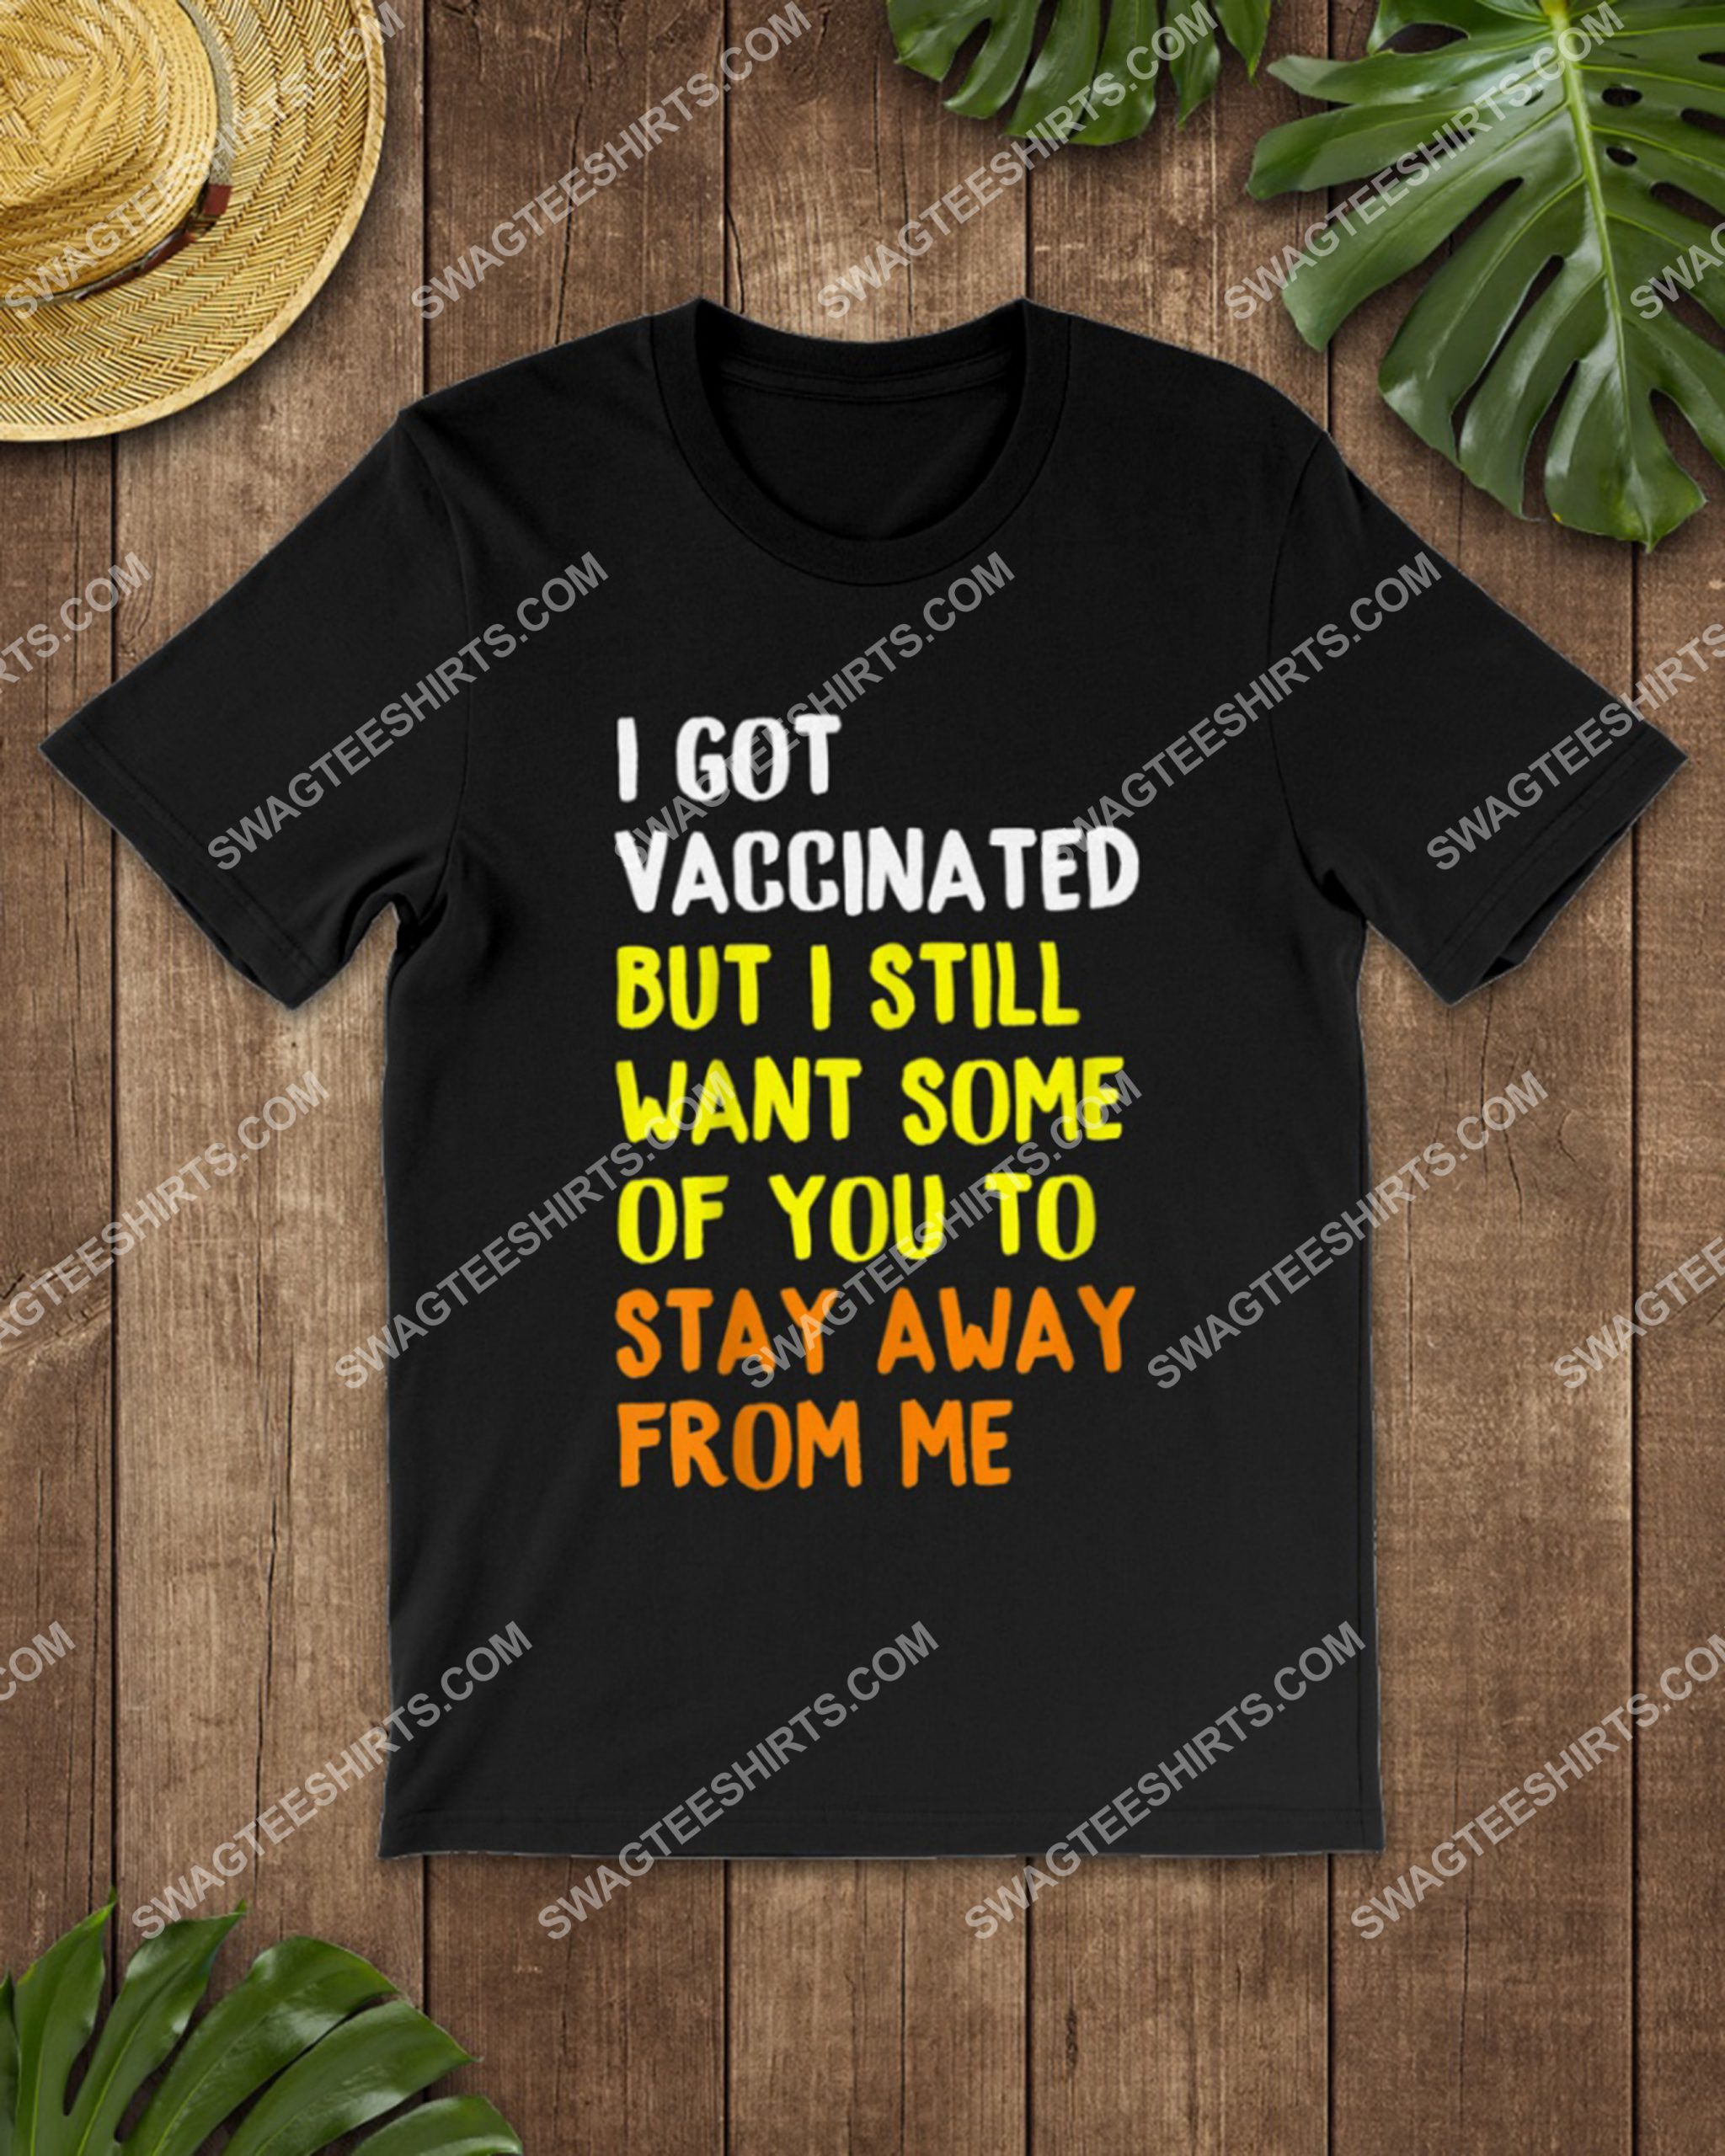 i got vaccinated but i still want some of you to stay away from me shirt 2(1)